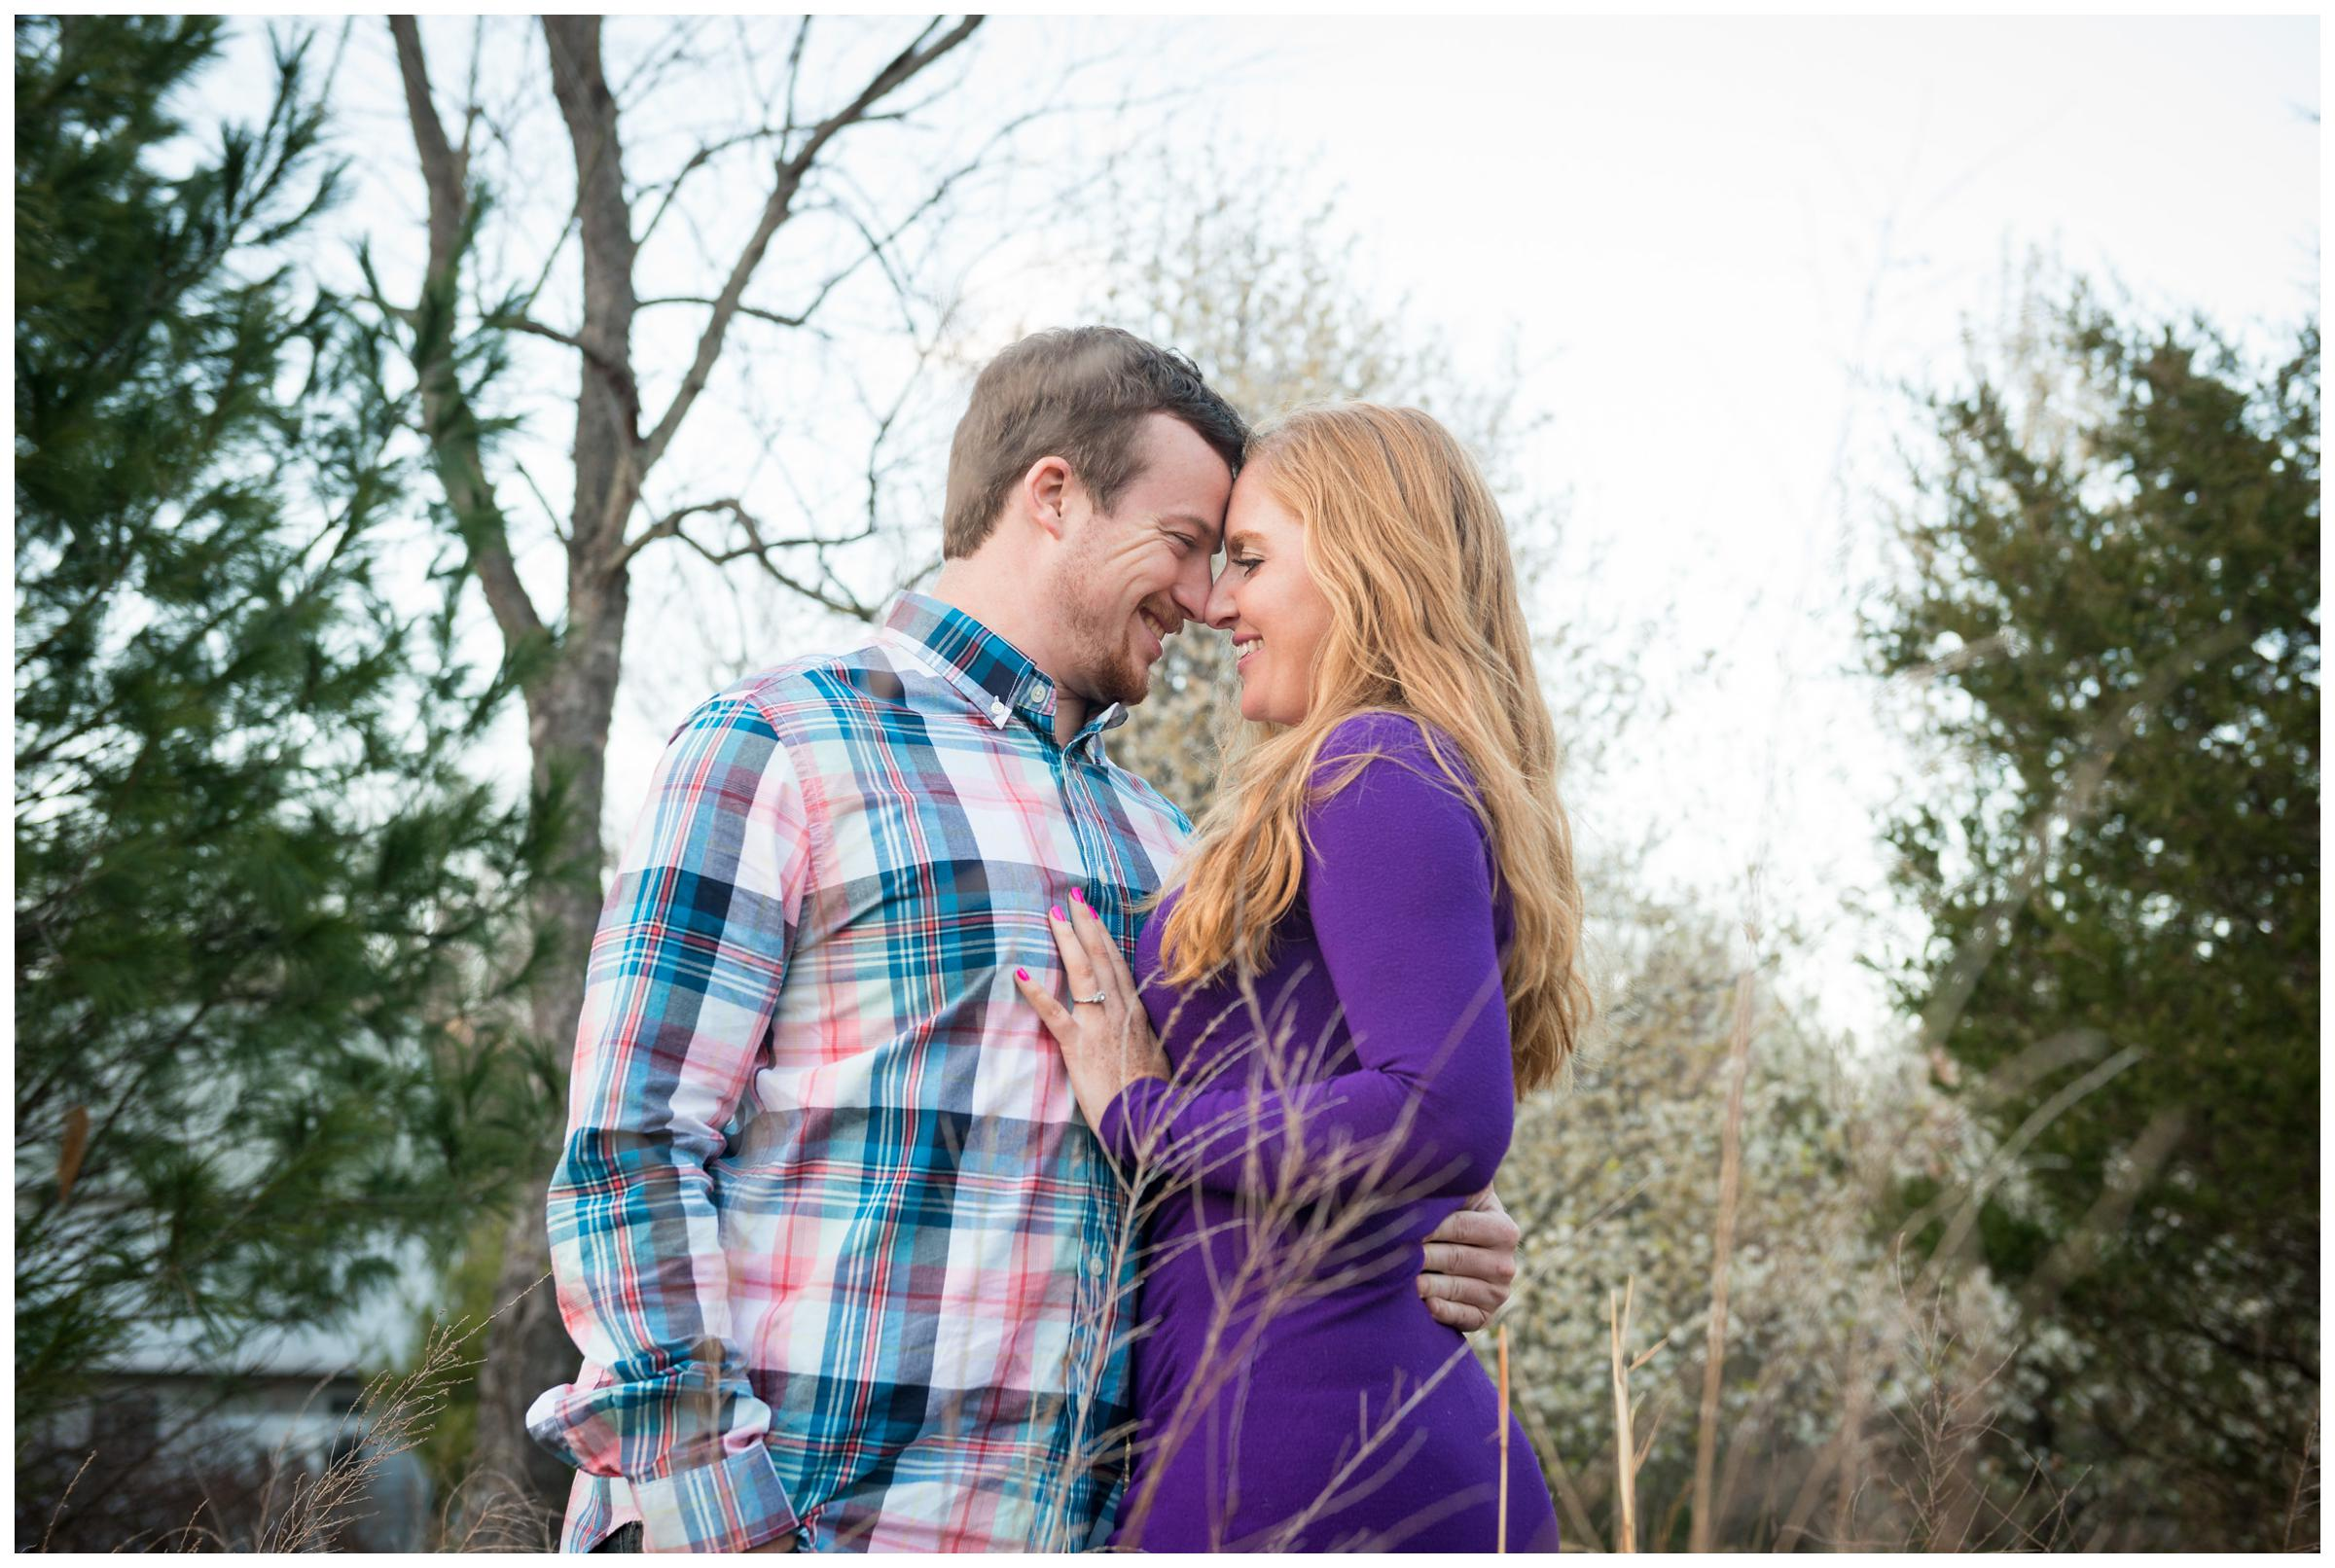 Spring cherry blossom engagement session in Rockville, Maryland